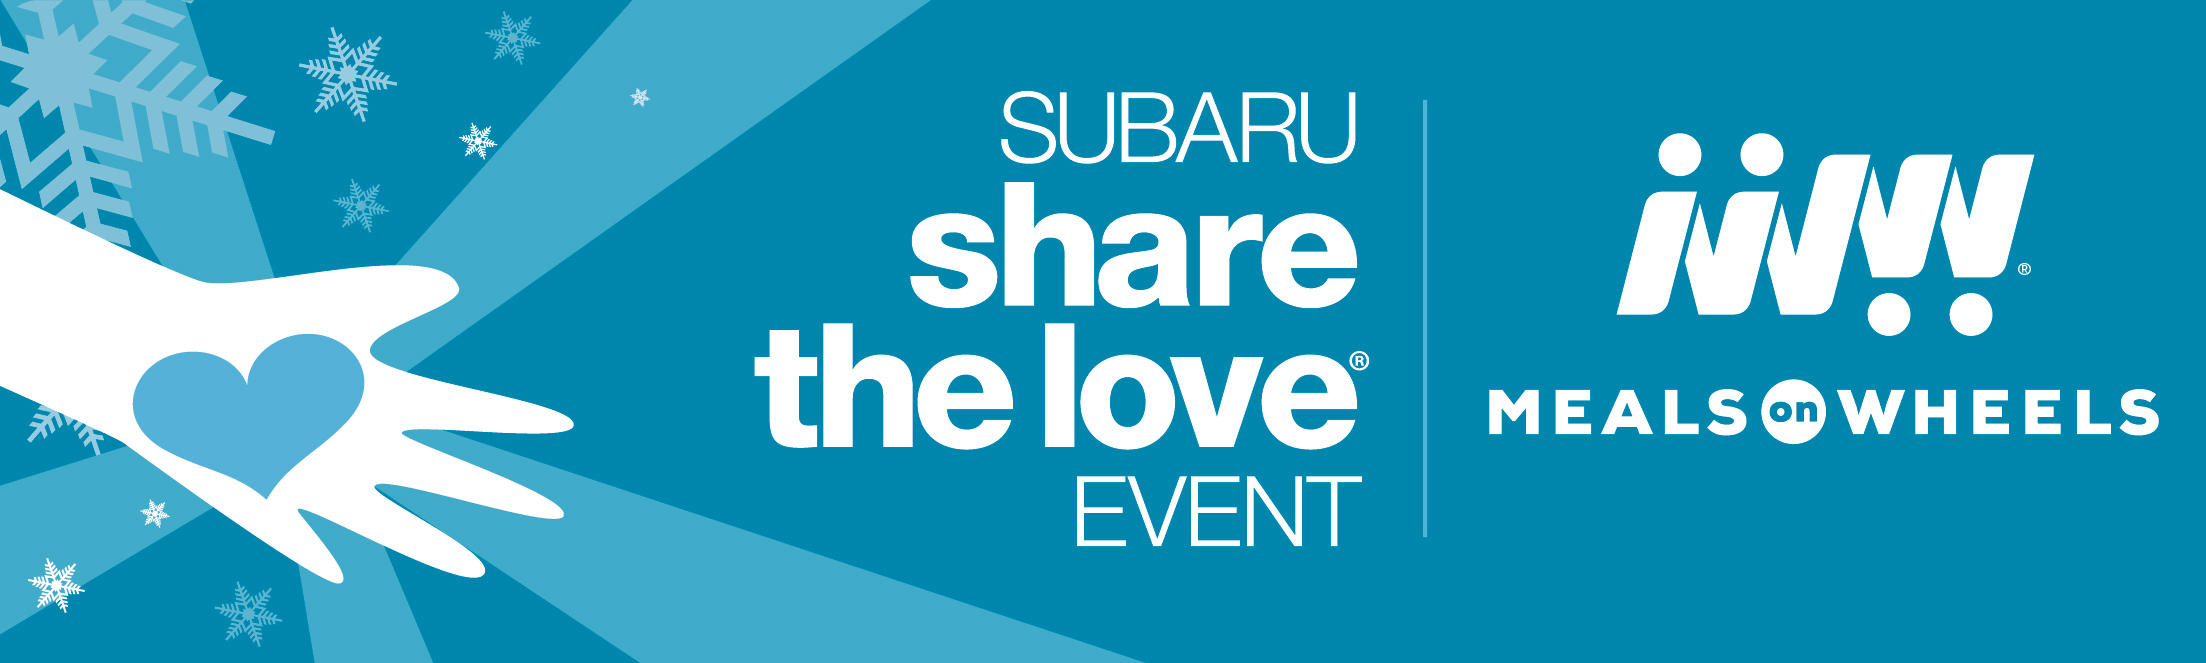 Subaru Share the Love Event - Meals on Wheels